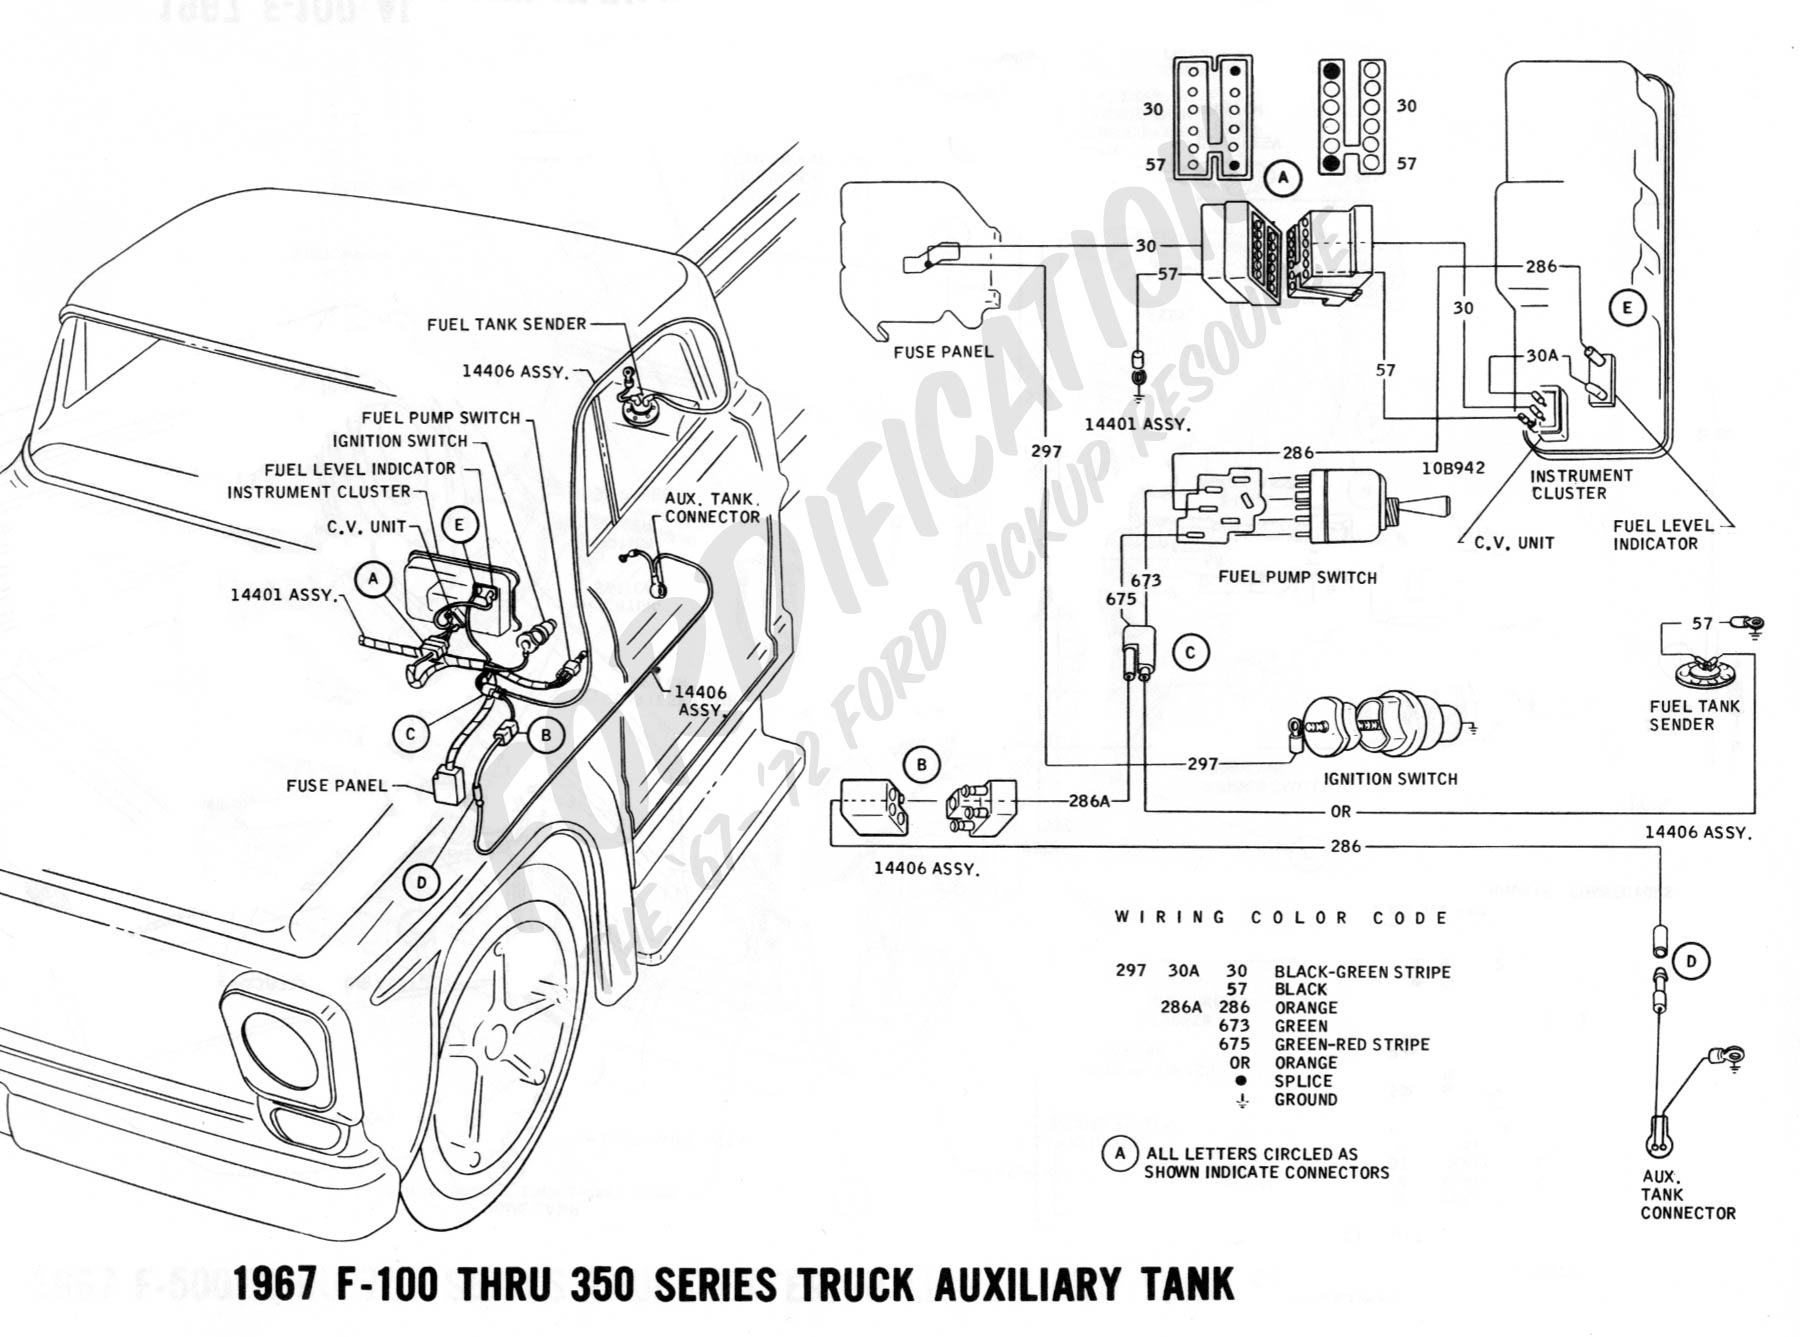 1989 Ford F250 Duel Fuel Tank Diagram on 1996 4 9l Ford F 150 Engine Diagram